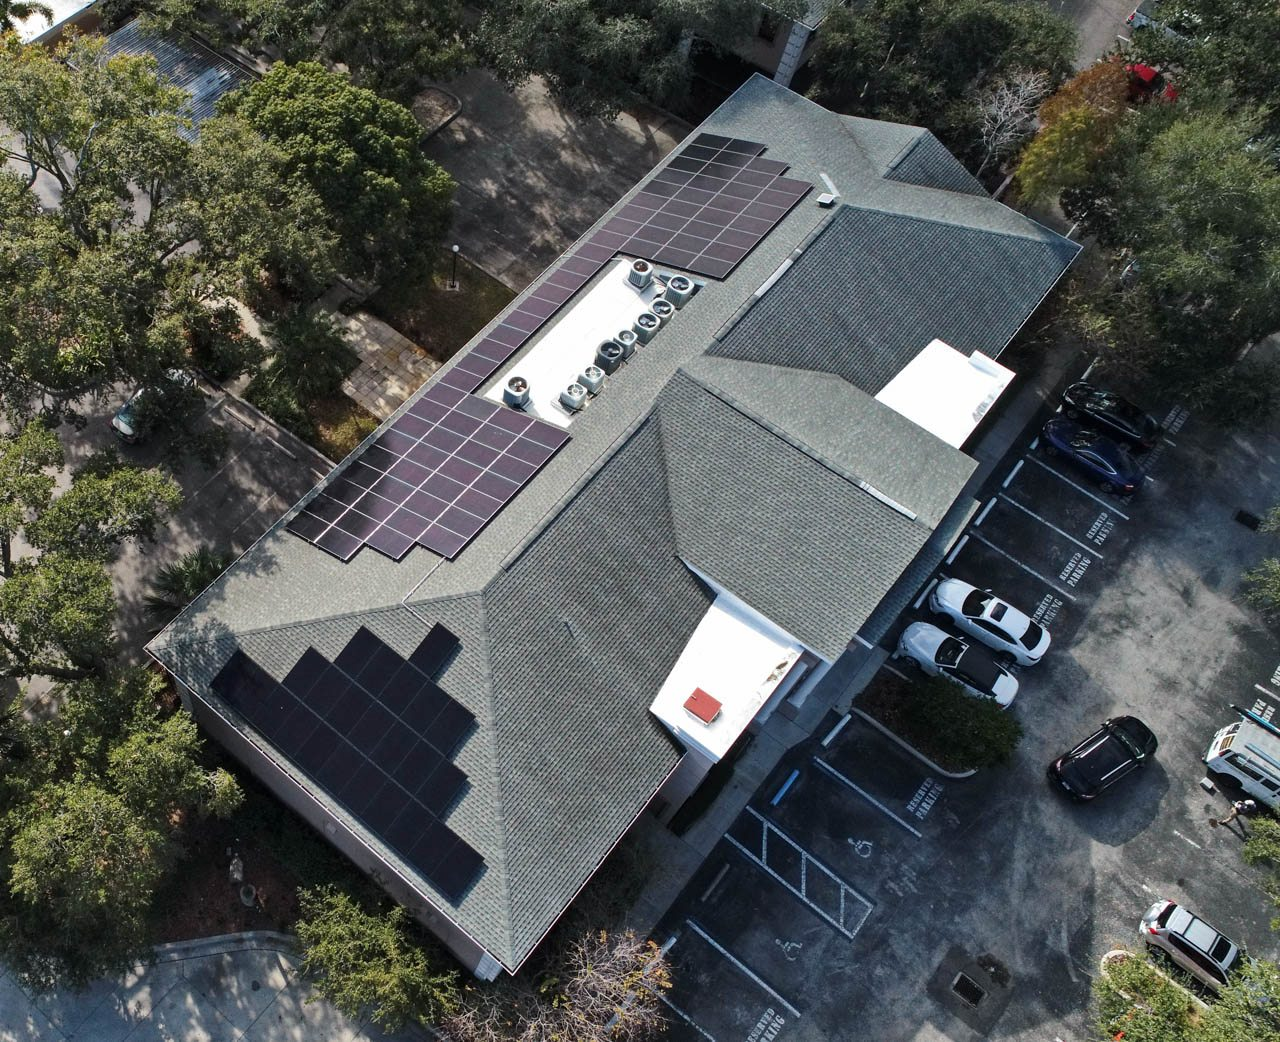 Aerial View of a Solar Installation on a shingle roof in Clearwater, FL